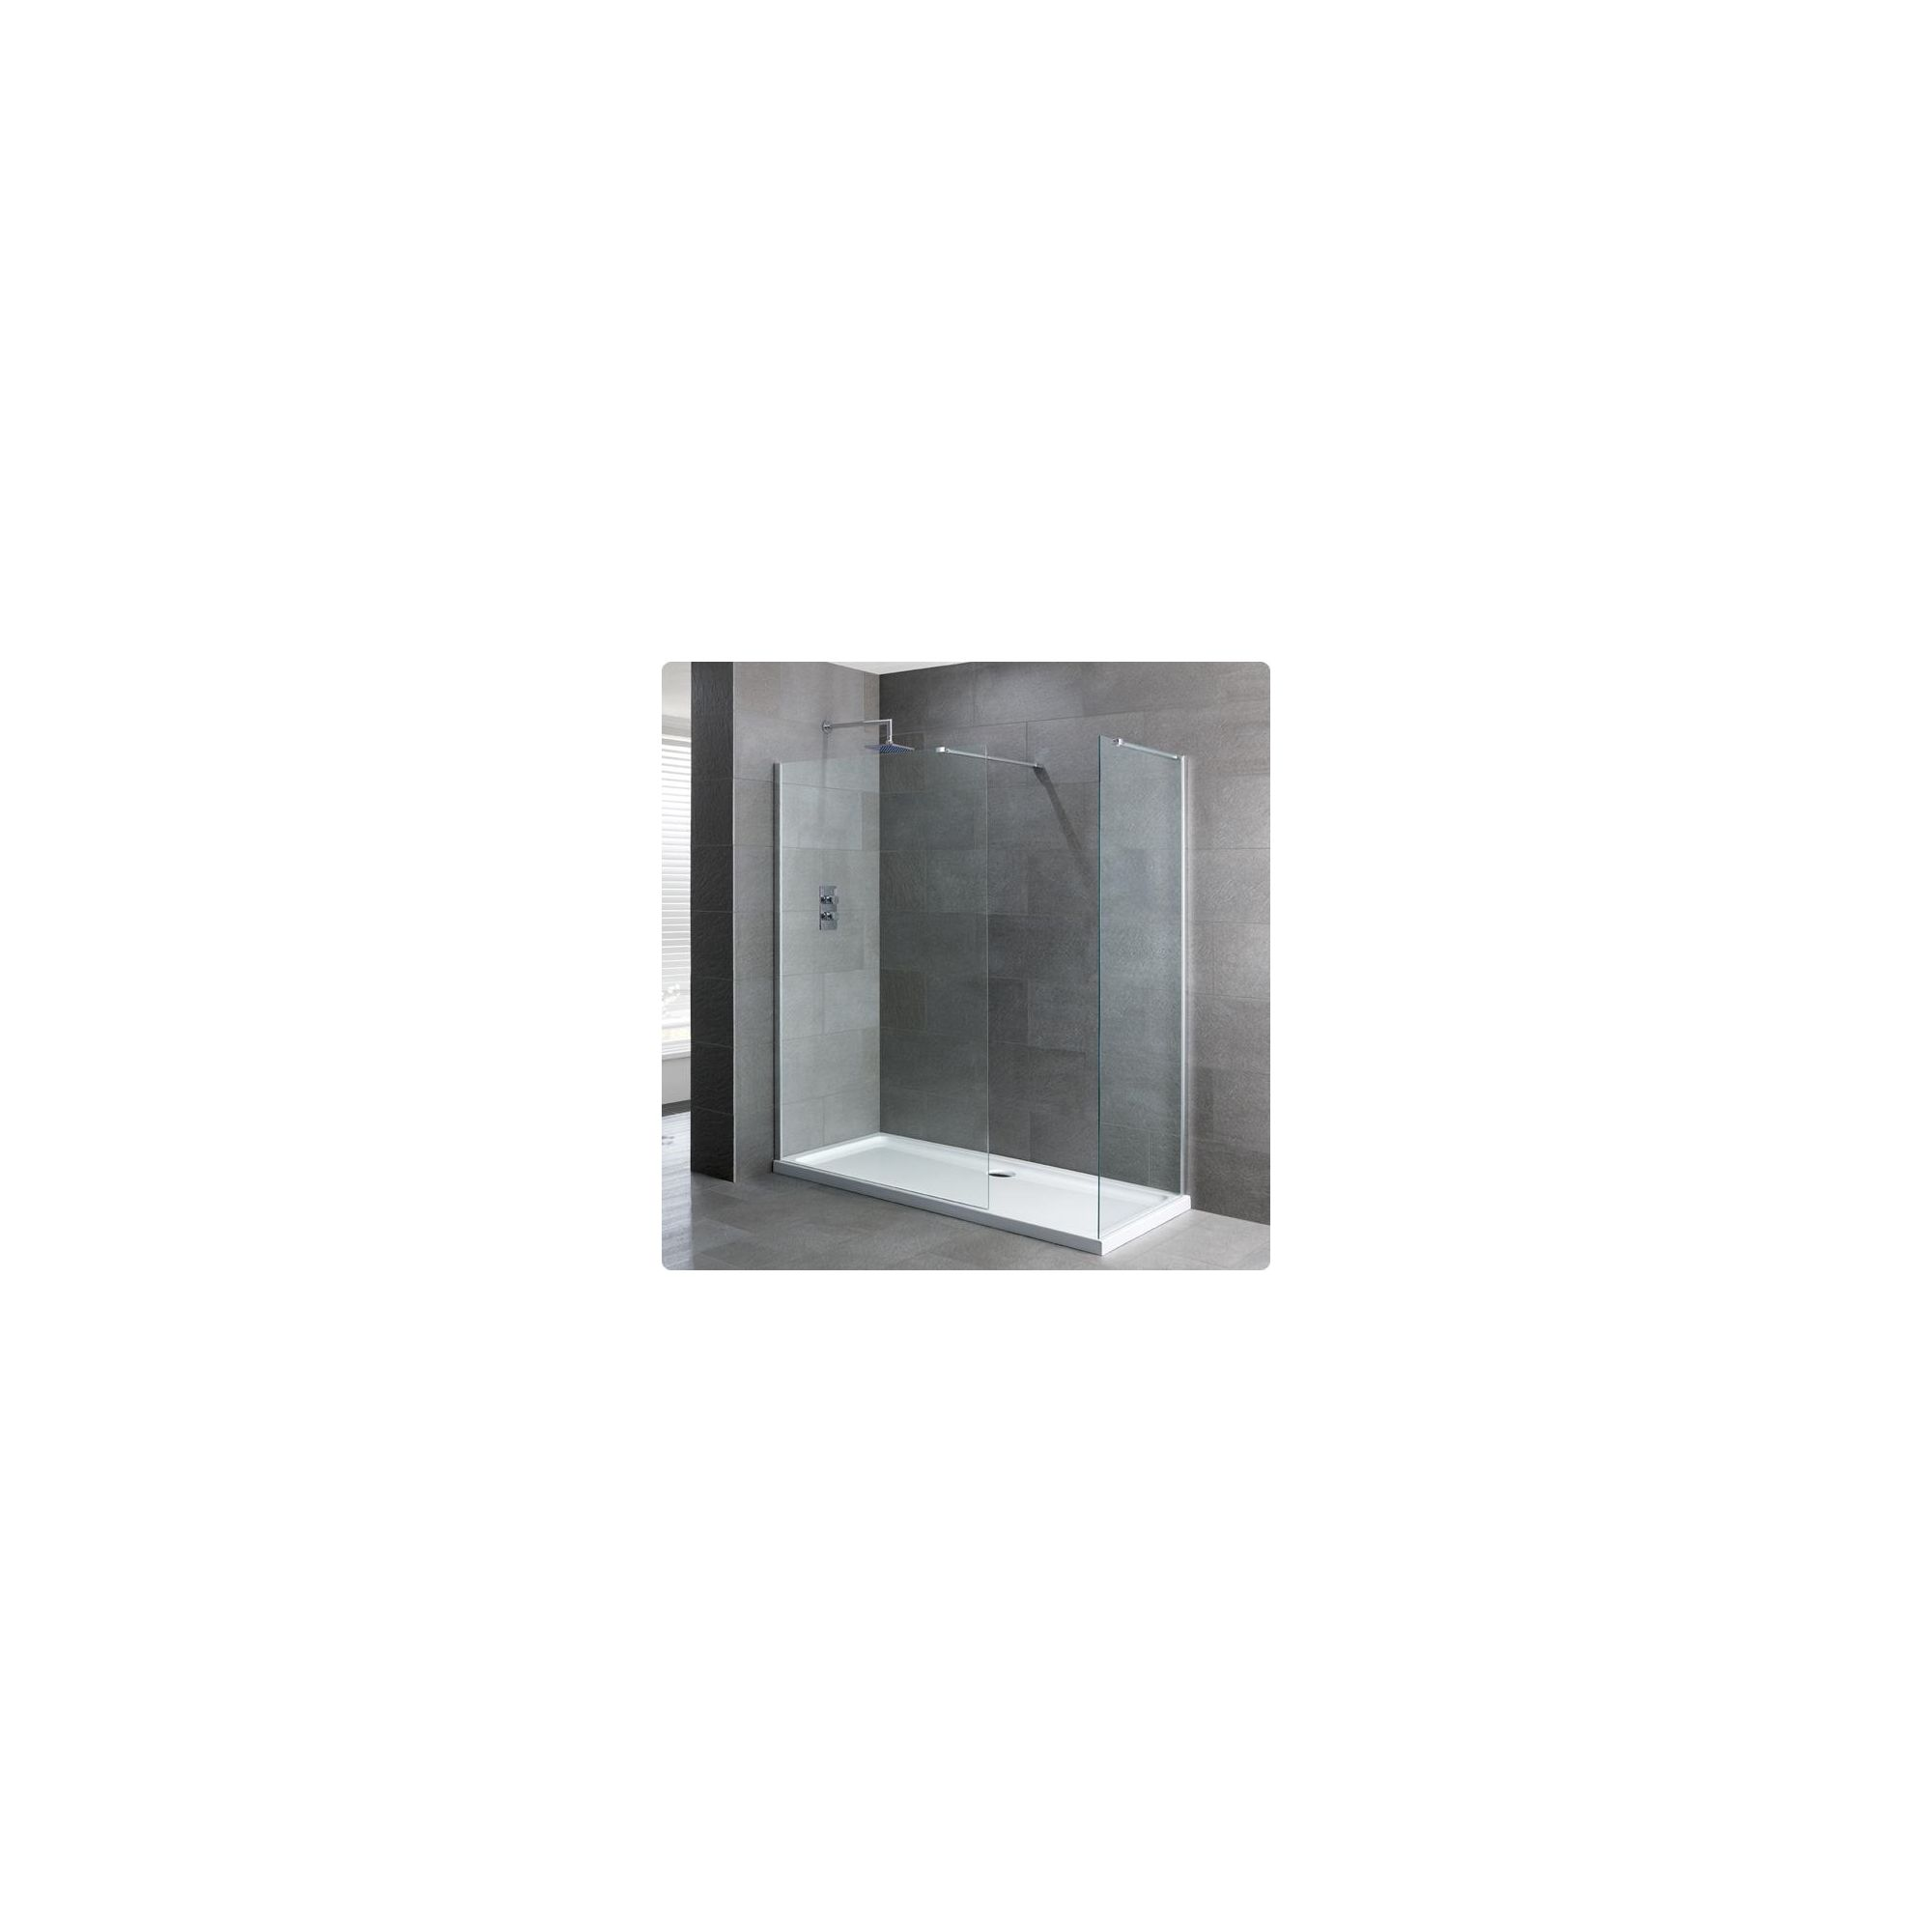 Duchy Select Silver Walk-In Shower Enclosure 1700mm x 700mm, Standard Tray, 6mm Glass at Tesco Direct